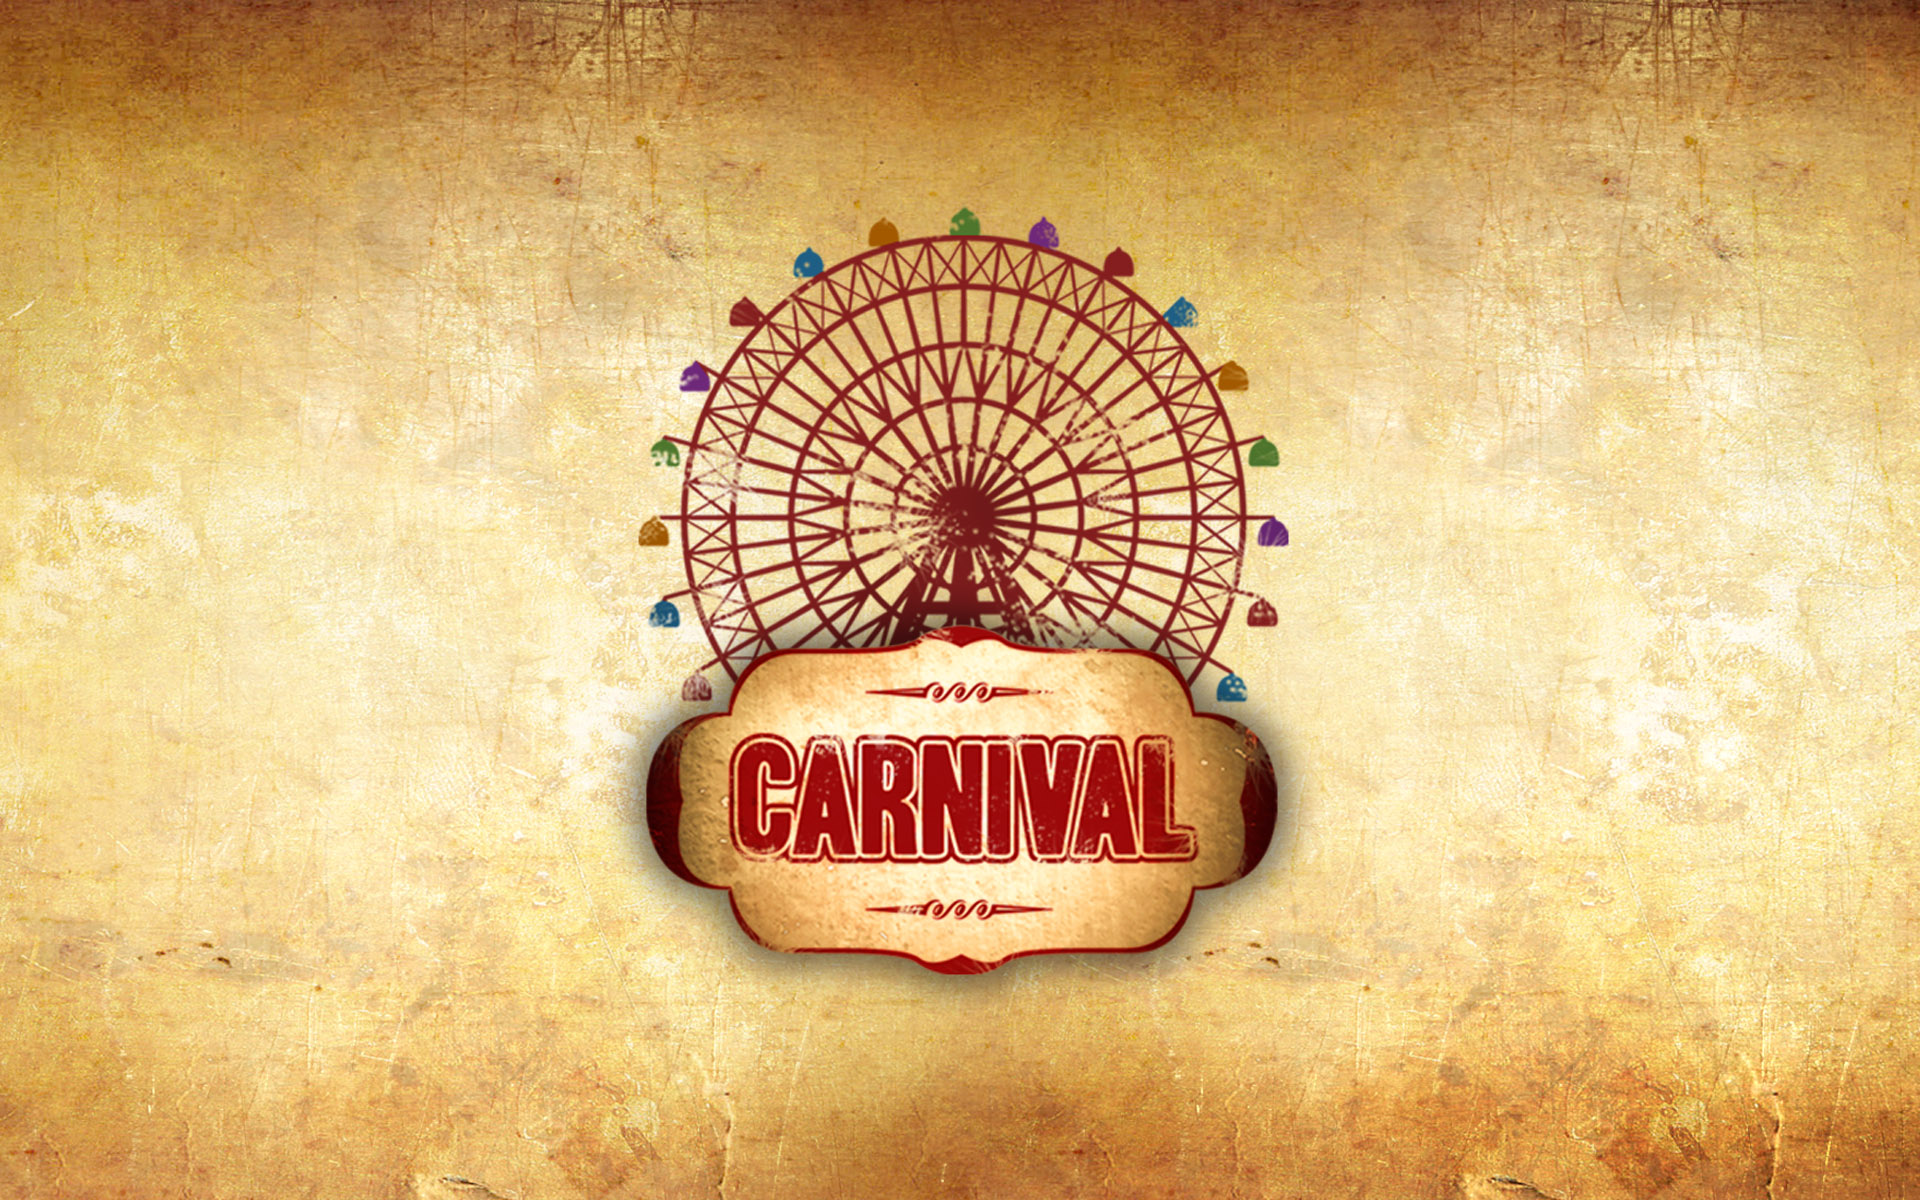 Cool Mac Wallpapers Hd Free Carnival Wallpapers Hd Pixelstalk Net